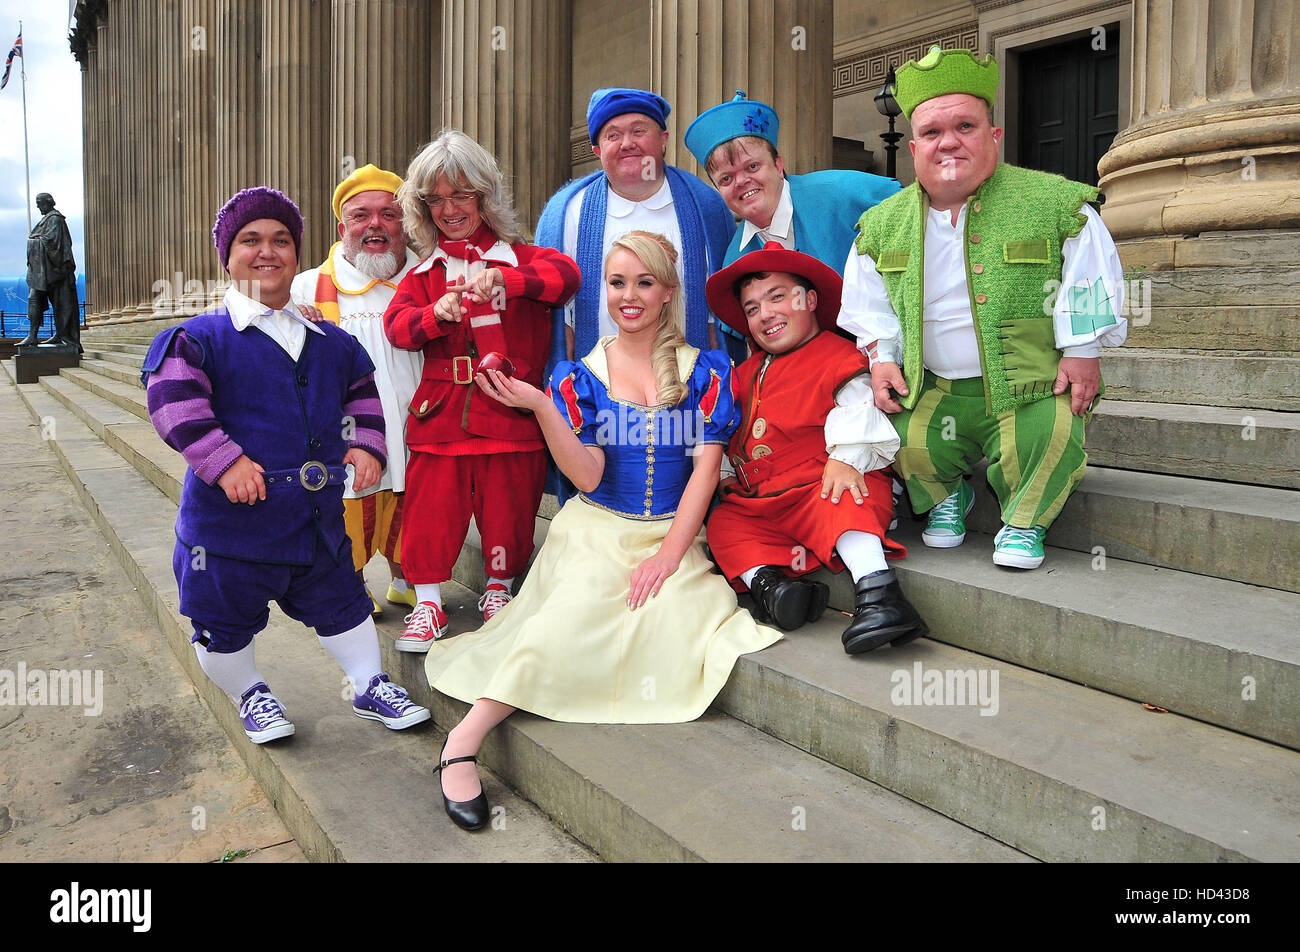 Will It Snow For Christmas Cast.The Cast Of The Liverpool Empire Christmas Panto Snow White